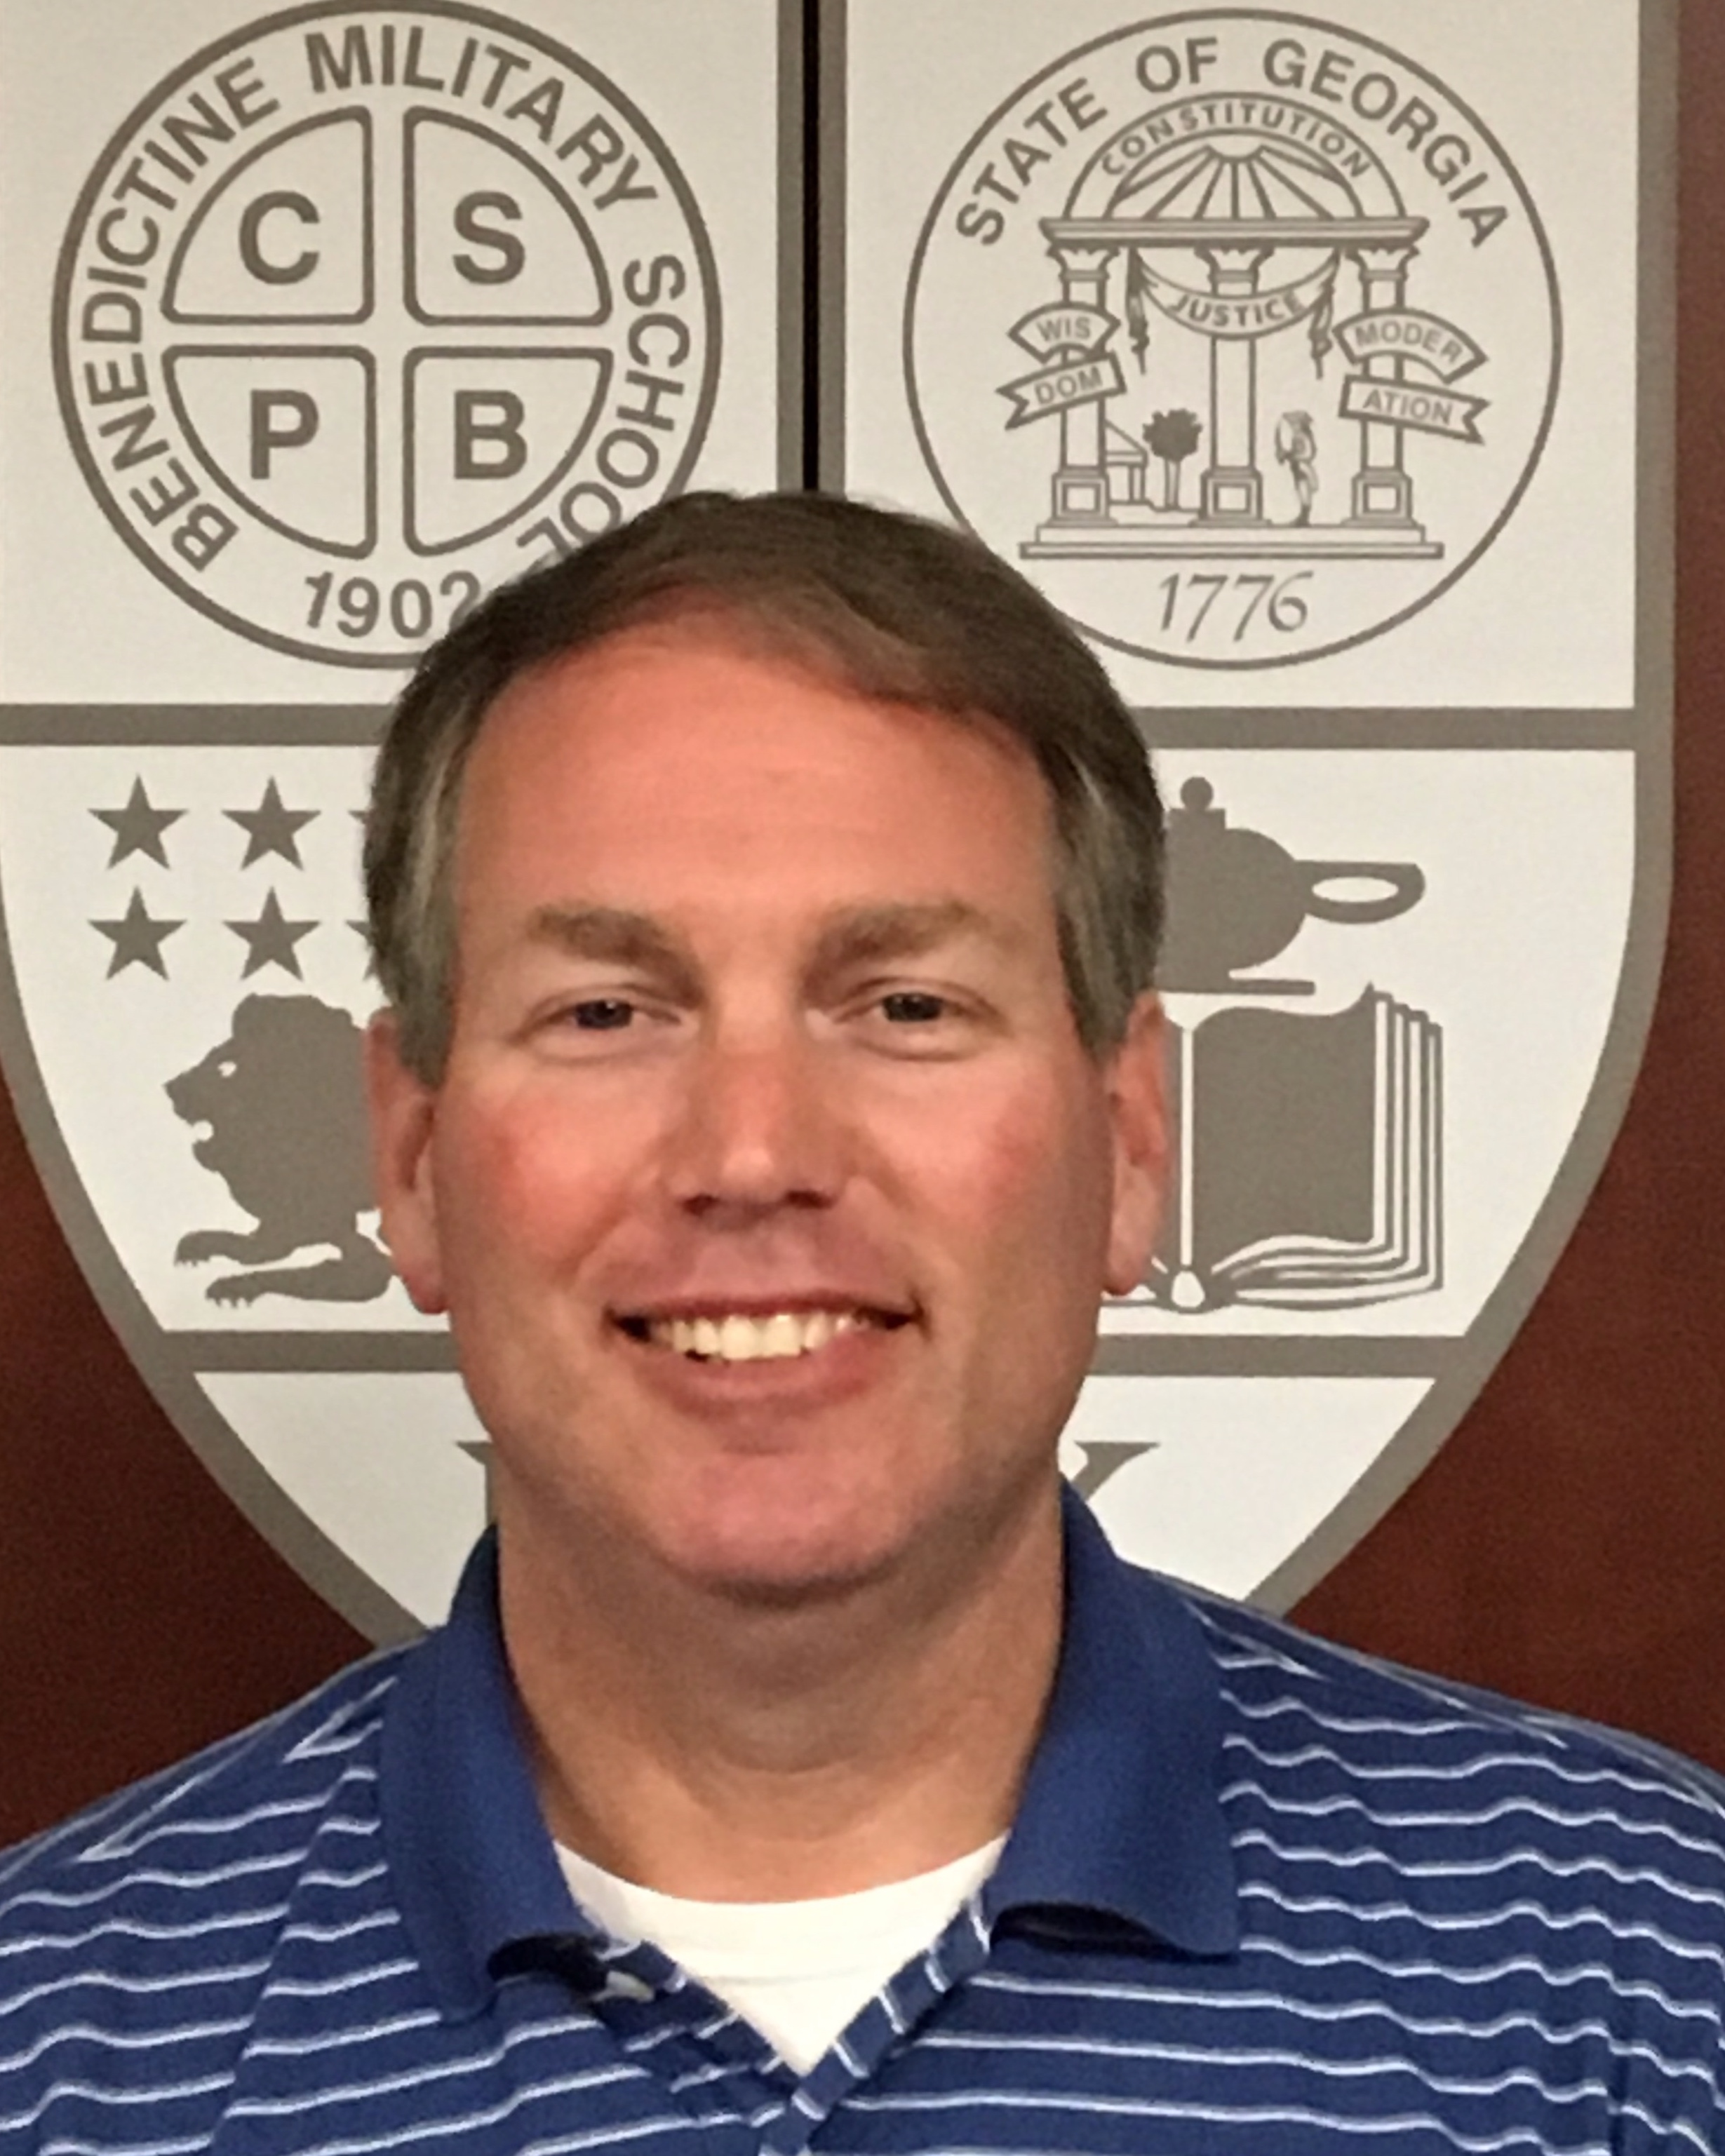 Greg Markiton, Advancement Director  Benedictine Military School